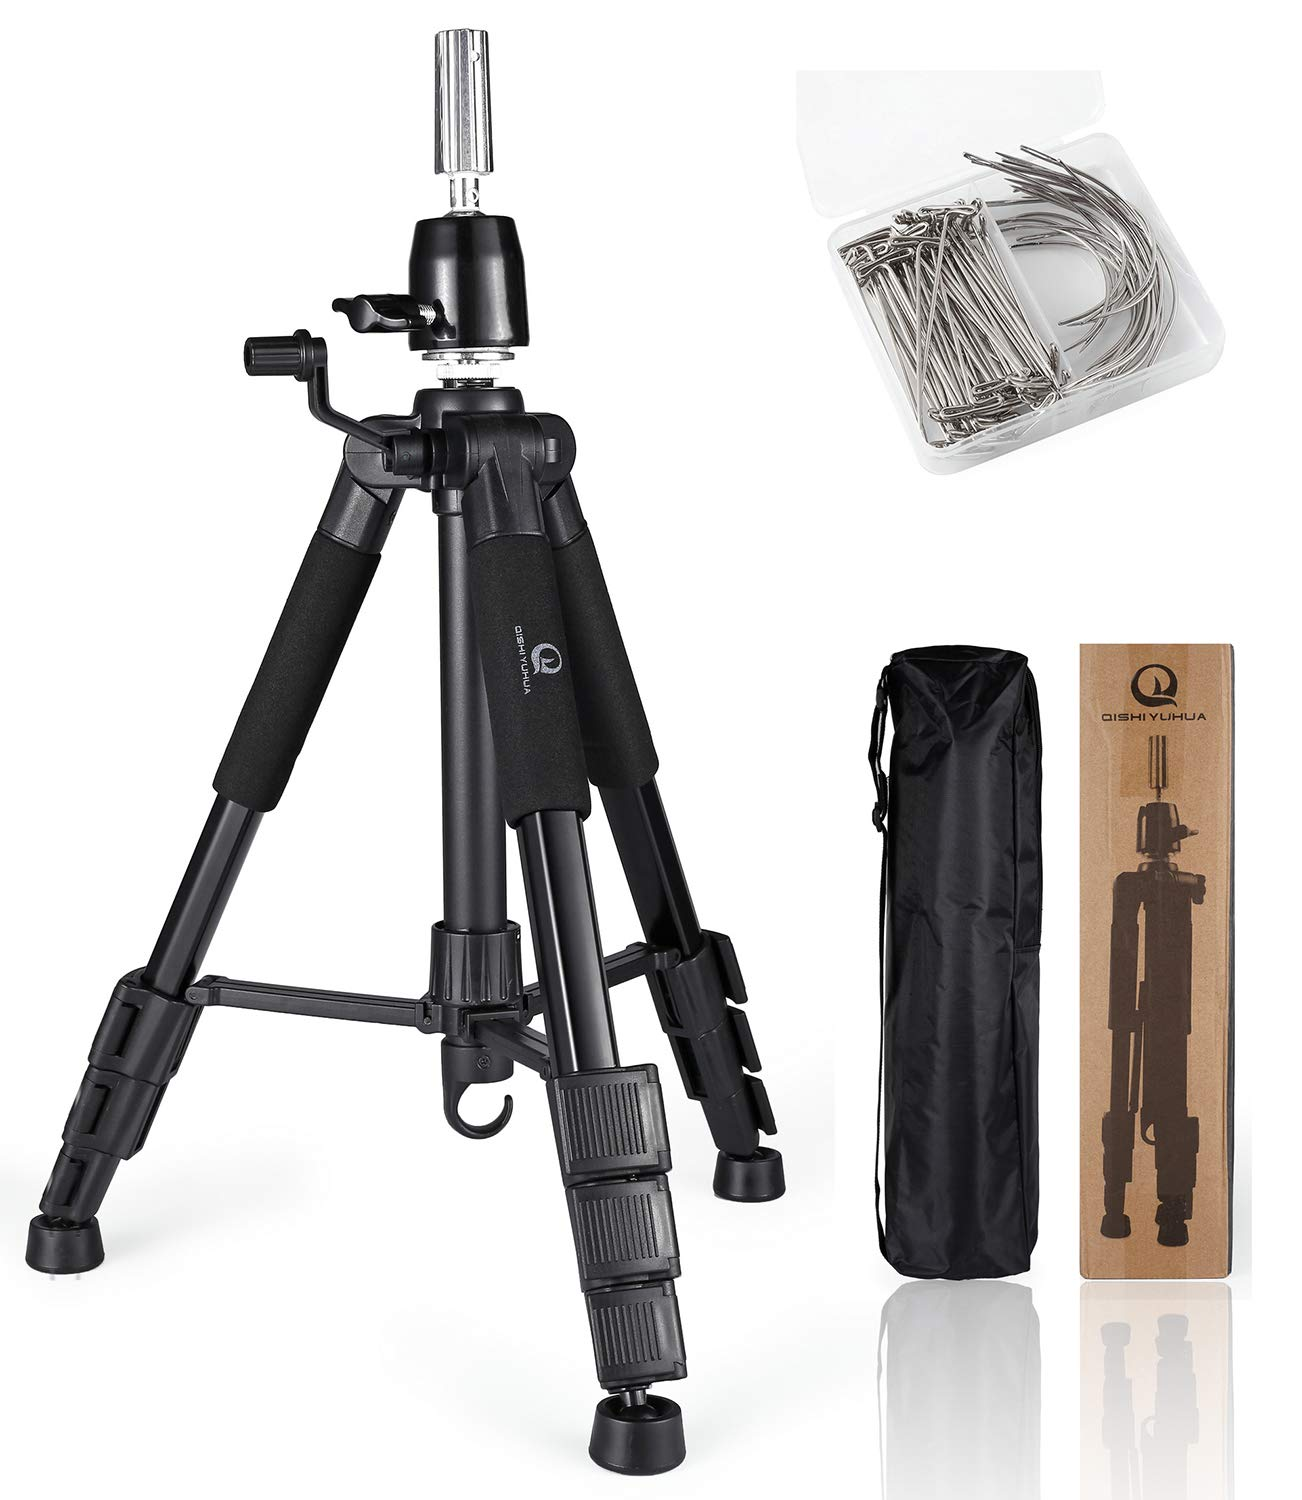 Wig Stand Tripod with Non-Slip Base Adjustable Mannequin Head Stand with Hook Heavy Duty Manikin Head Tripod by QISHI YUHUA